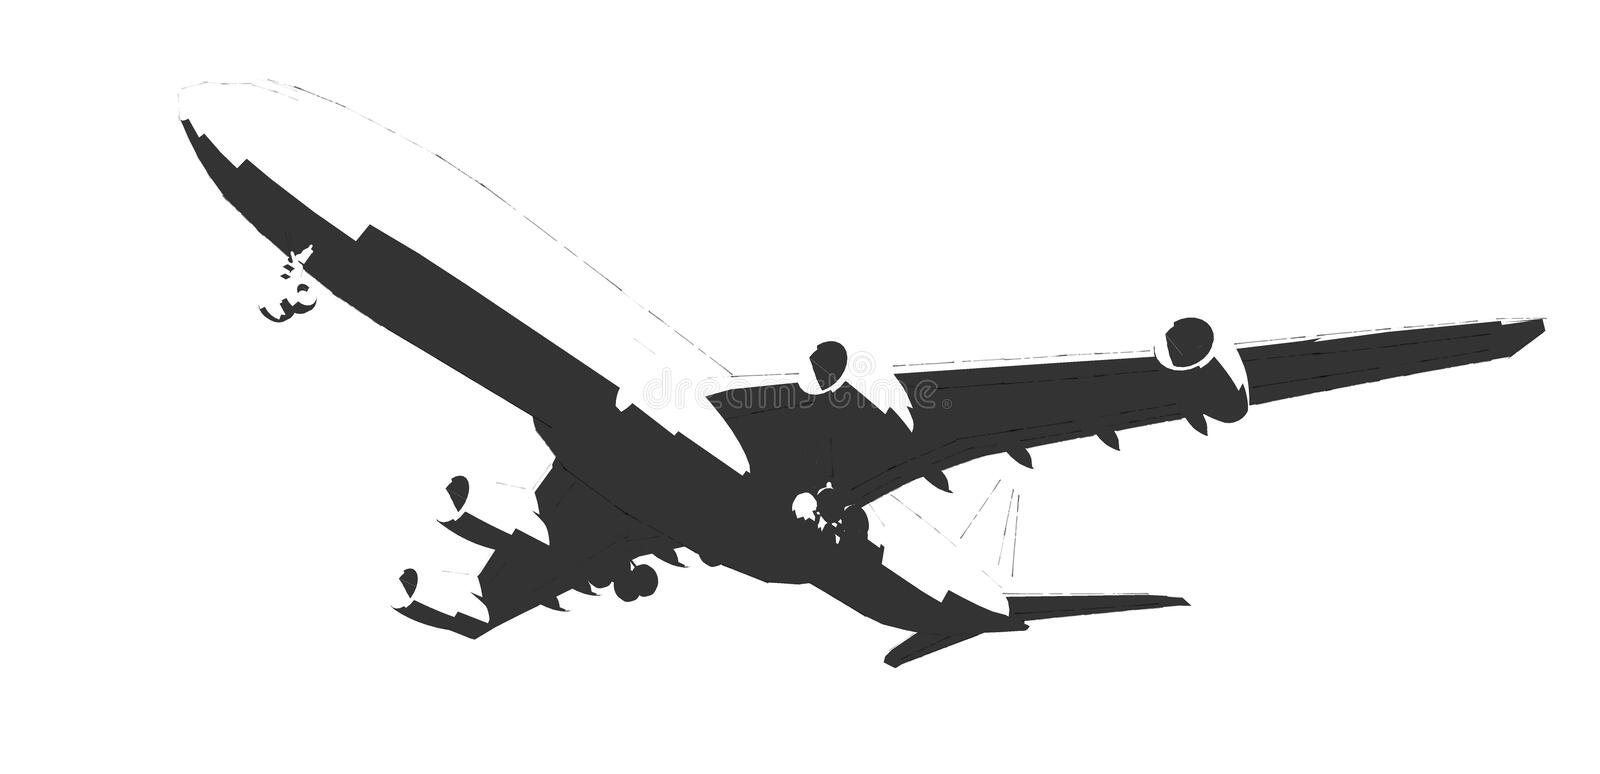 The aircraft, black and white drawing done in ink. Airplane - -ink-black and white vector illustration